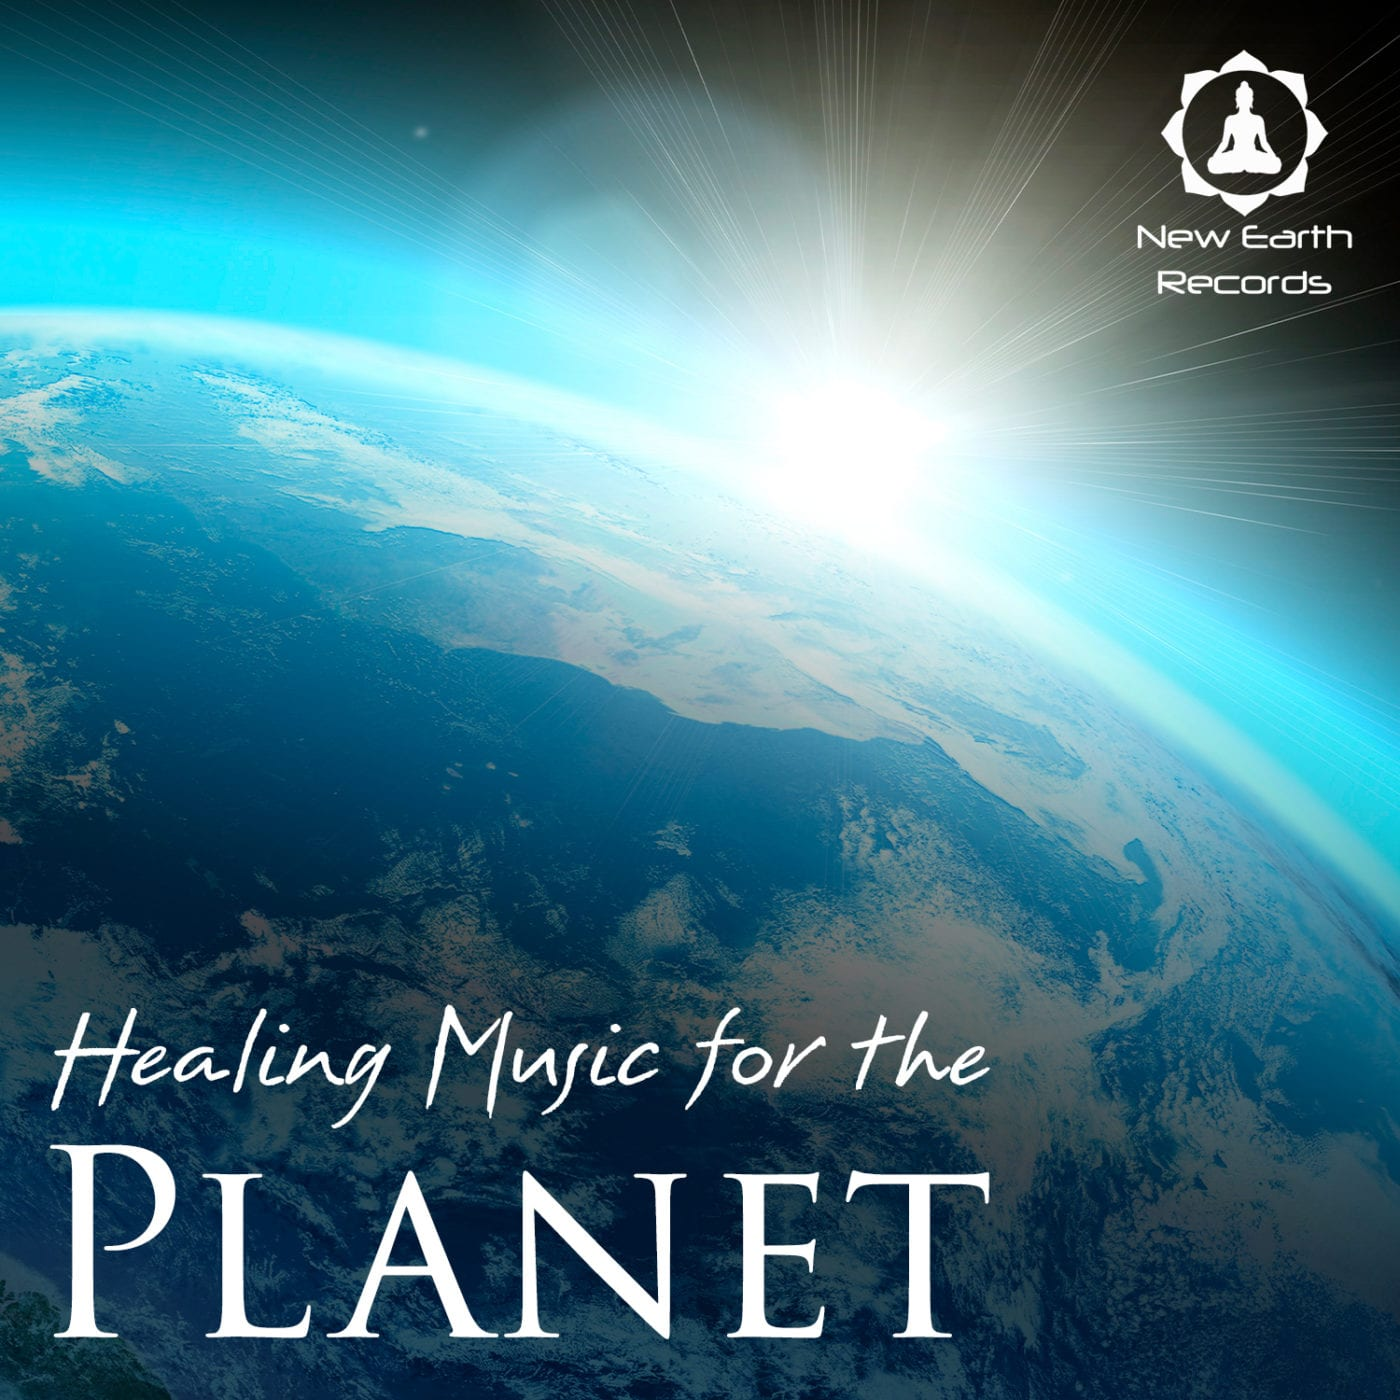 Healing Music for the Planet Spotify playlist